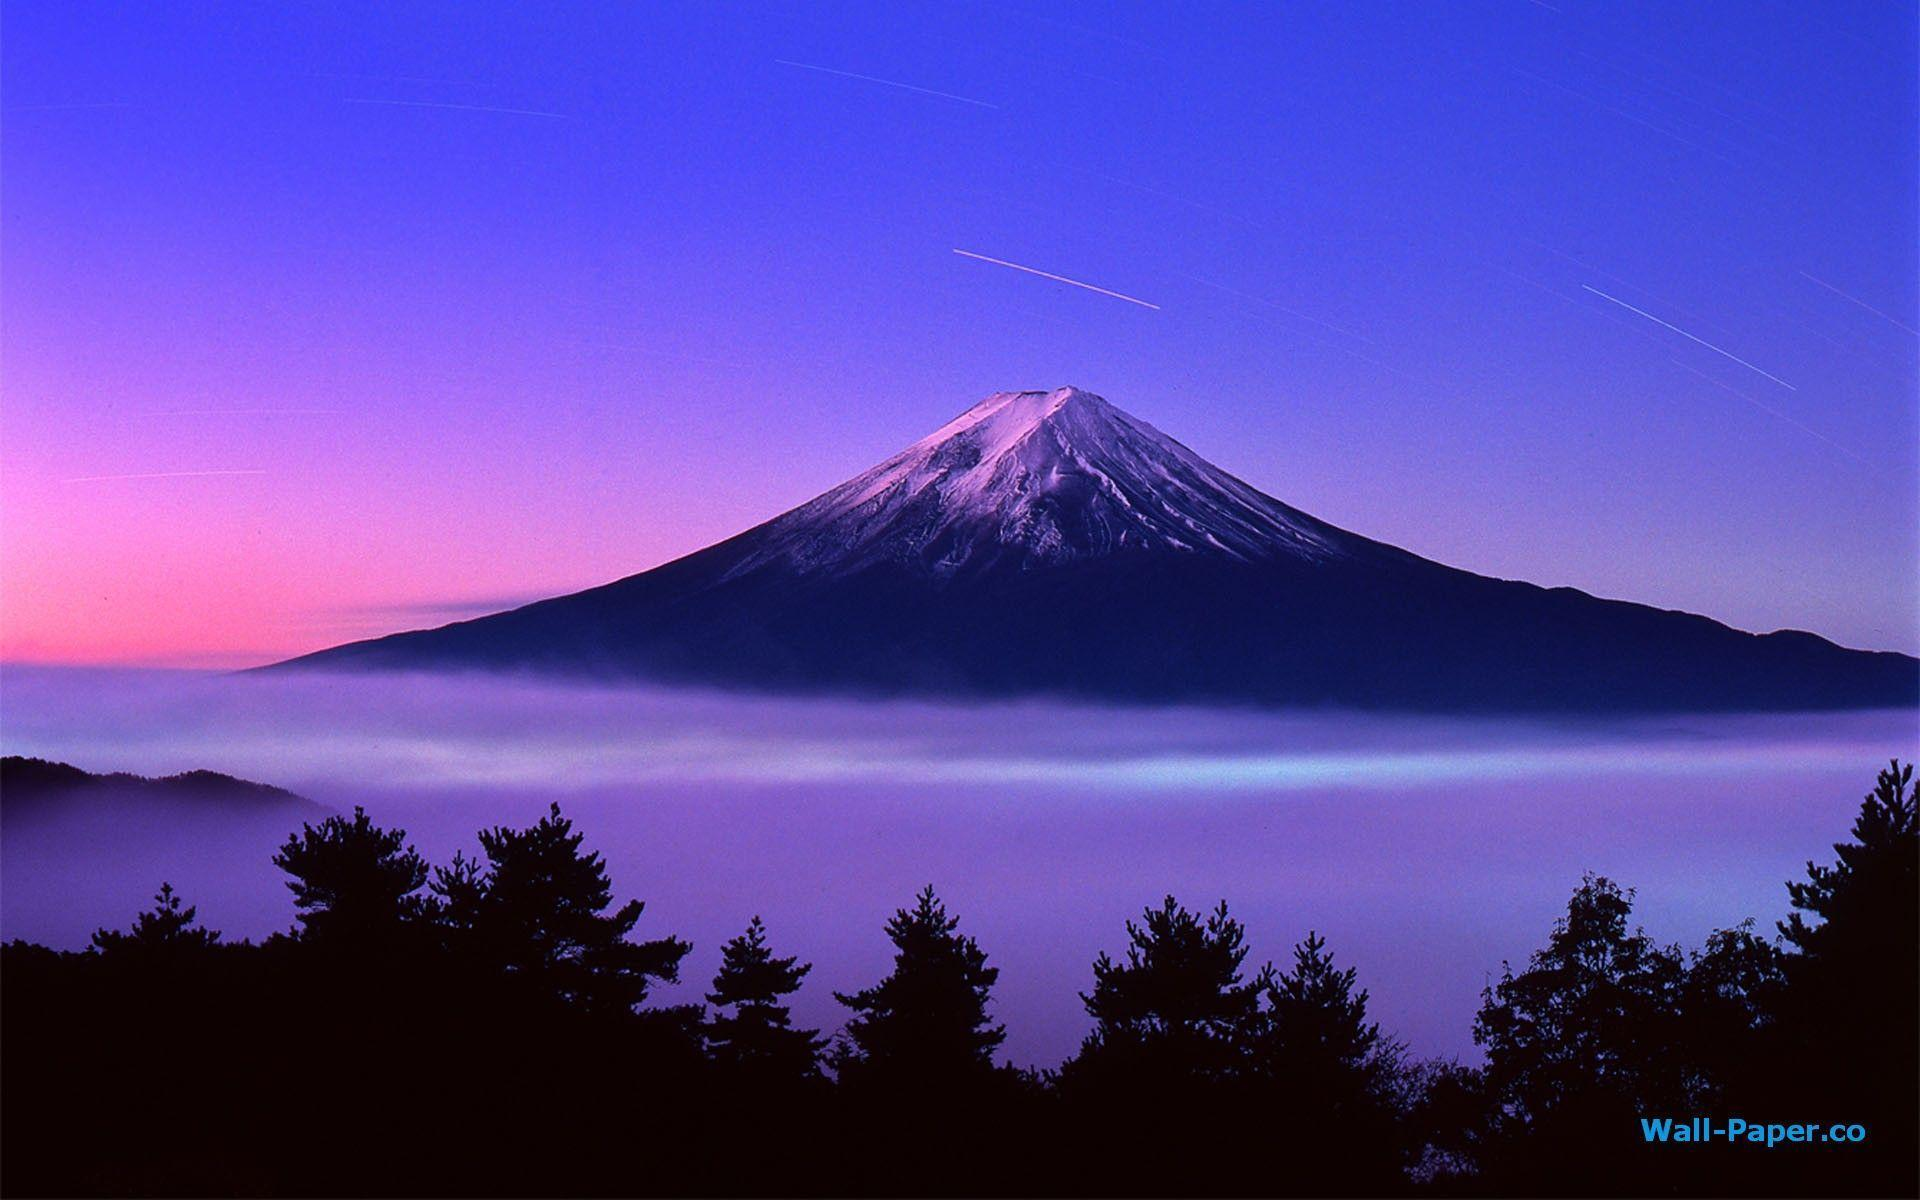 Mount Fuji Wallpapers and Background Images   stmednet 1920x1200